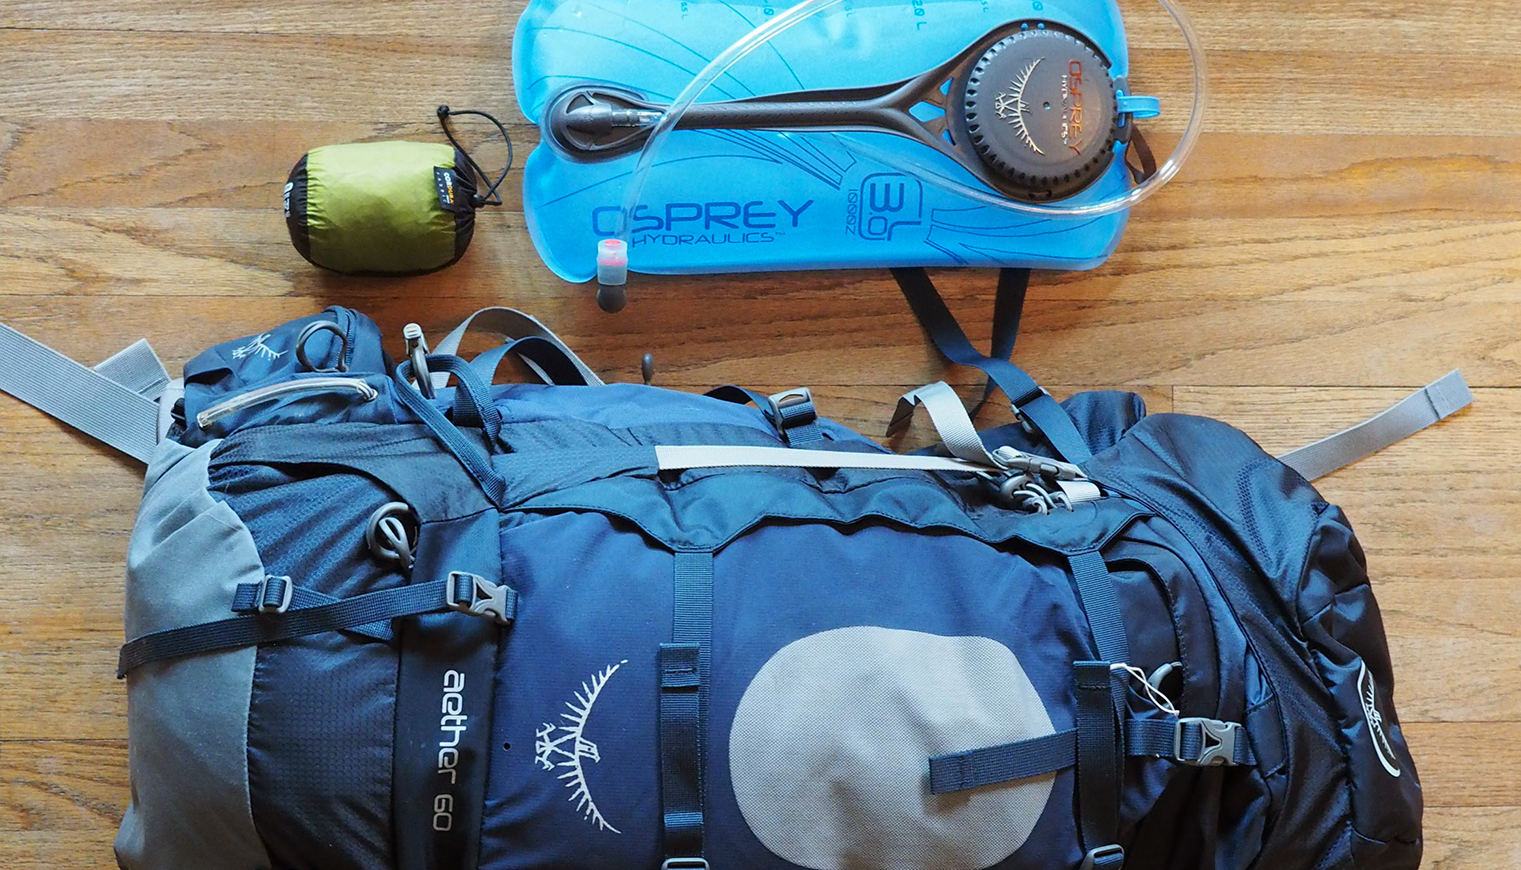 First Impressions: Backpack and Accessories